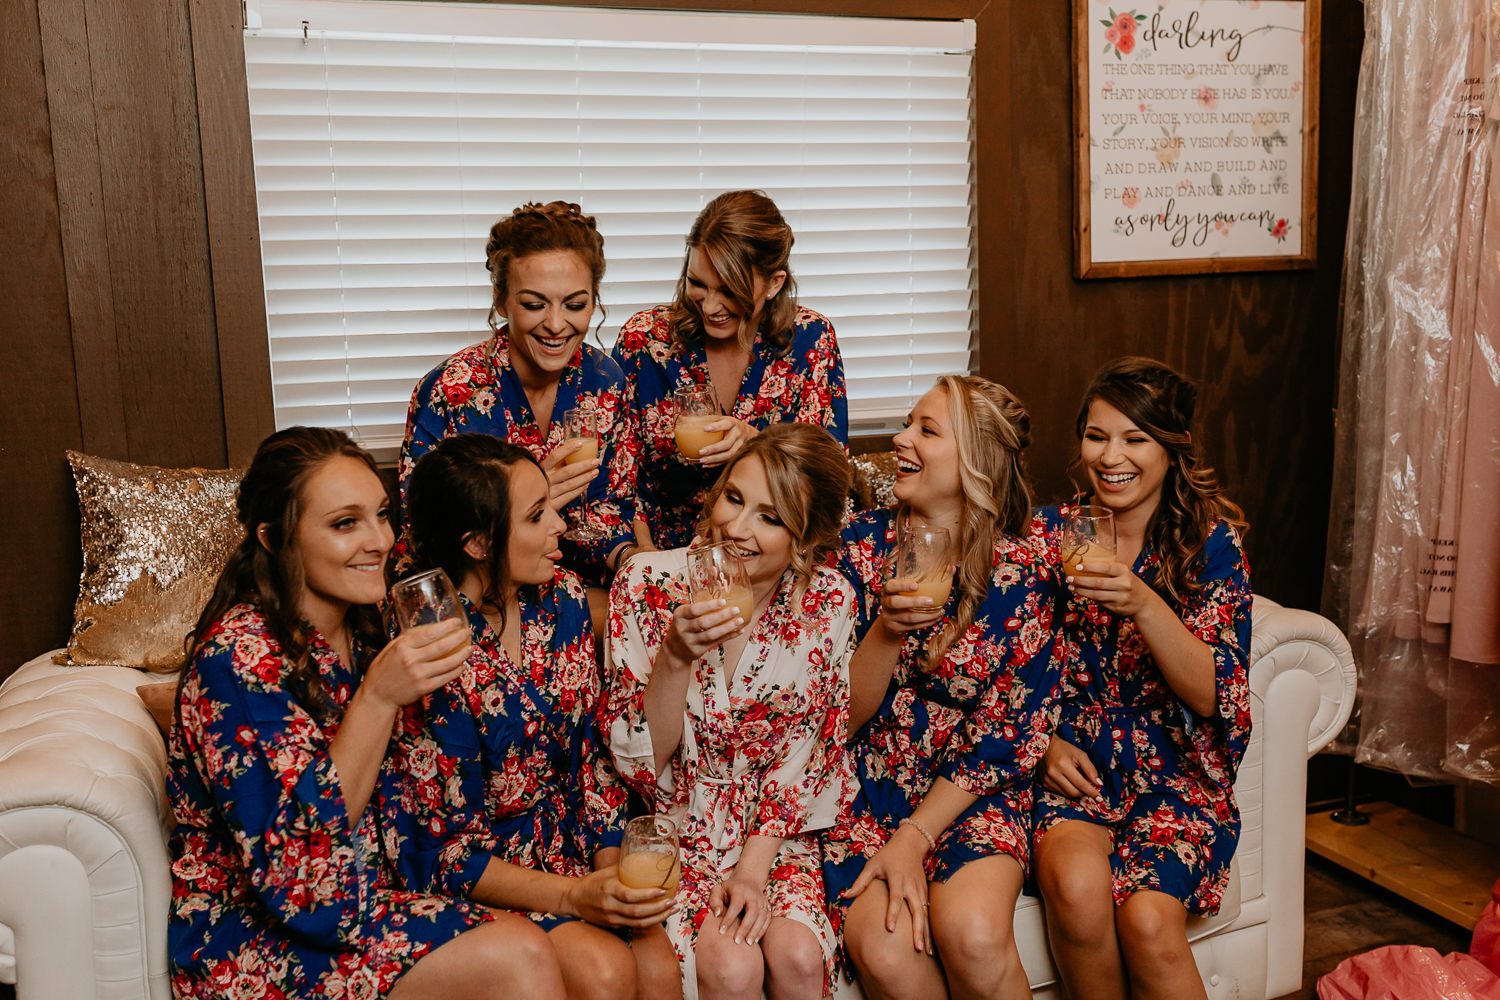 close up of bridesmaids laughing sitting on couch holding champagne glasses